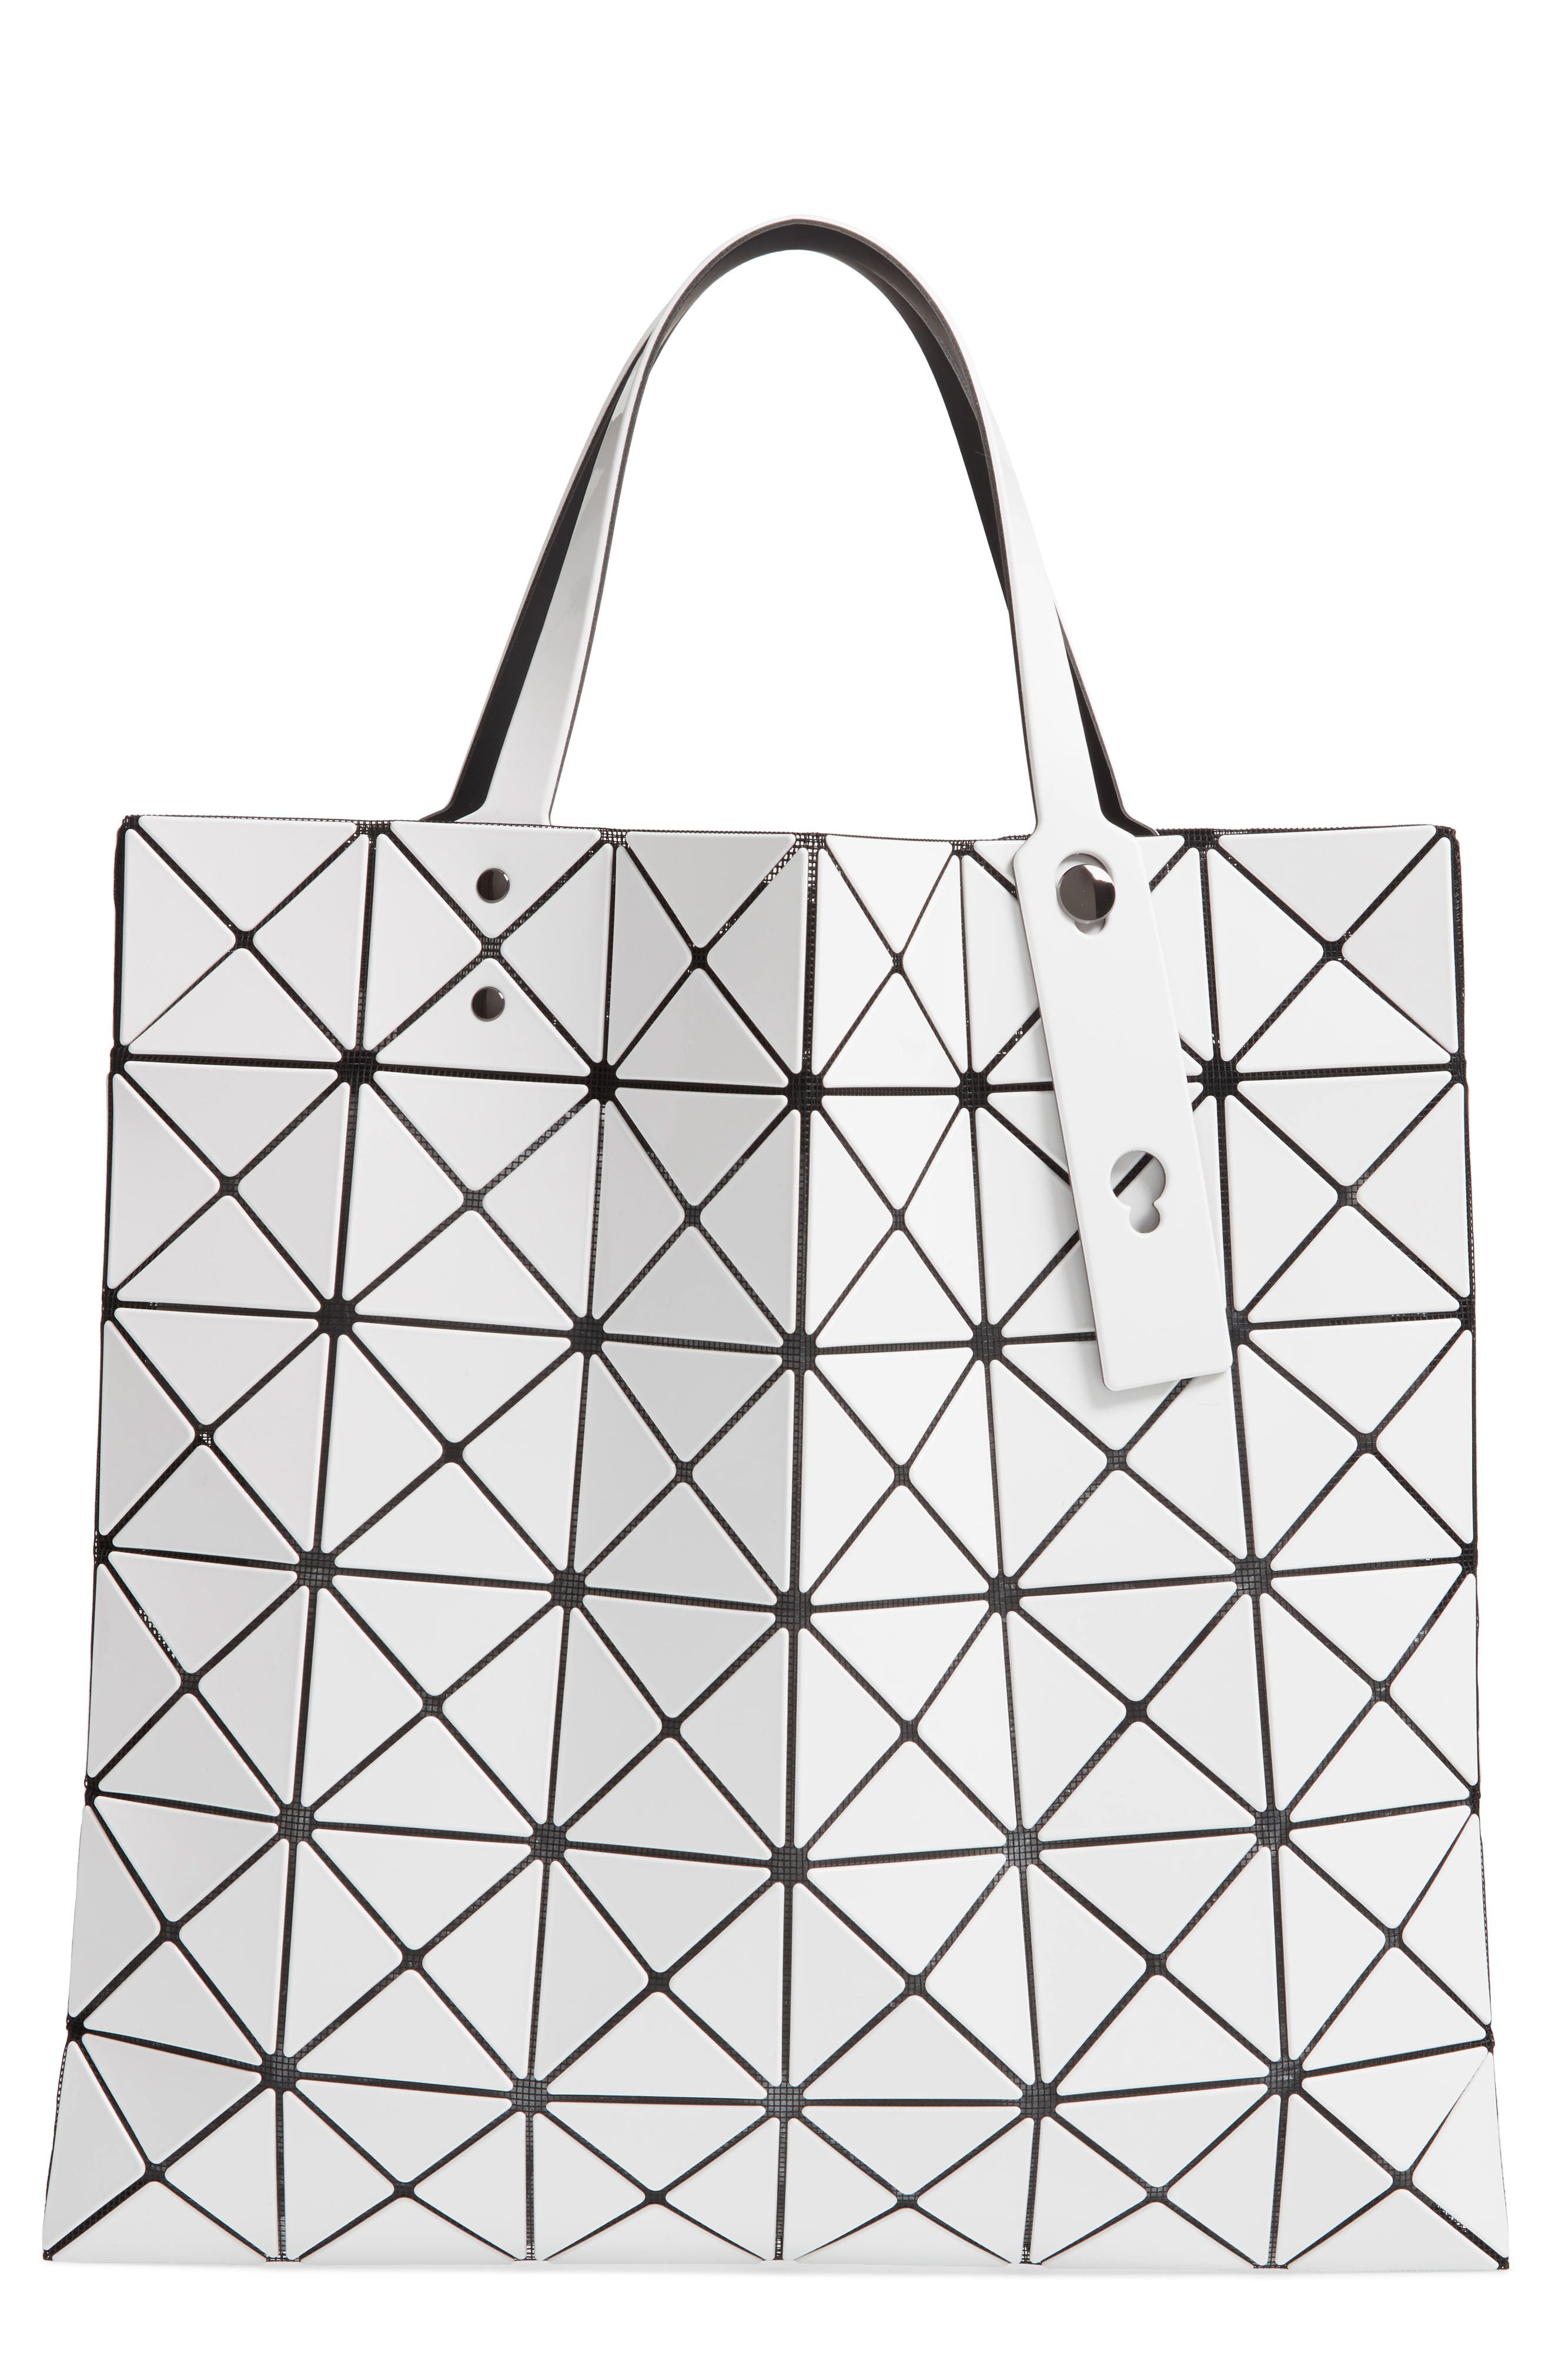 b89ab3de83 Bao Bao Issey Miyake Lucent Lightweight Collapsible Tote Bag In White